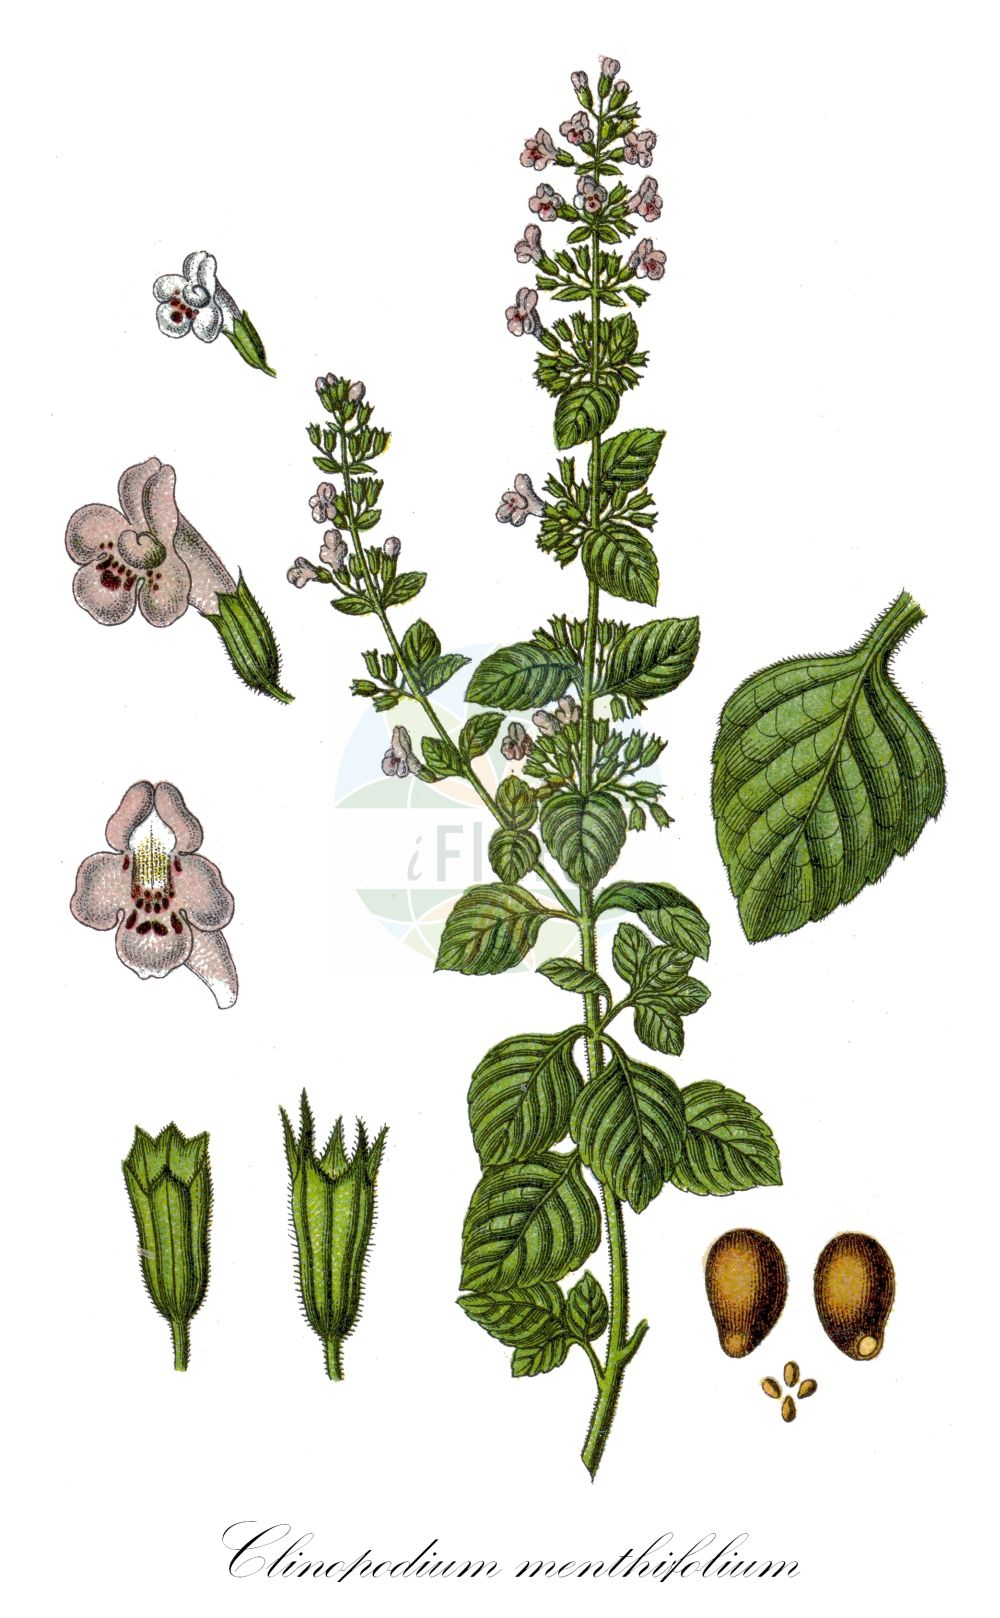 Historische Abbildung von Clinopodium menthifolium (Wald-Bergminze - Wood Calamint). Das Bild zeigt Blatt, Bluete, Frucht und Same. ---- Historical Drawing of Clinopodium menthifolium (Wald-Bergminze - Wood Calamint).The image is showing leaf, flower, fruit and seed.(Clinopodium menthifolium,Wald-Bergminze,Wood Calamint,Calamintha menthifolia,Calamintha officinalis,Satureja menthifolia,Woodland Calamint,Clinopodium,Wirbeldost,Calamint,Lamiaceae,Lippenbluetengewaechse;Lippenbluetler,Nettle family,Blatt,Bluete,Frucht,Same,leaf,flower,fruit,seed,Sturm (1796f))